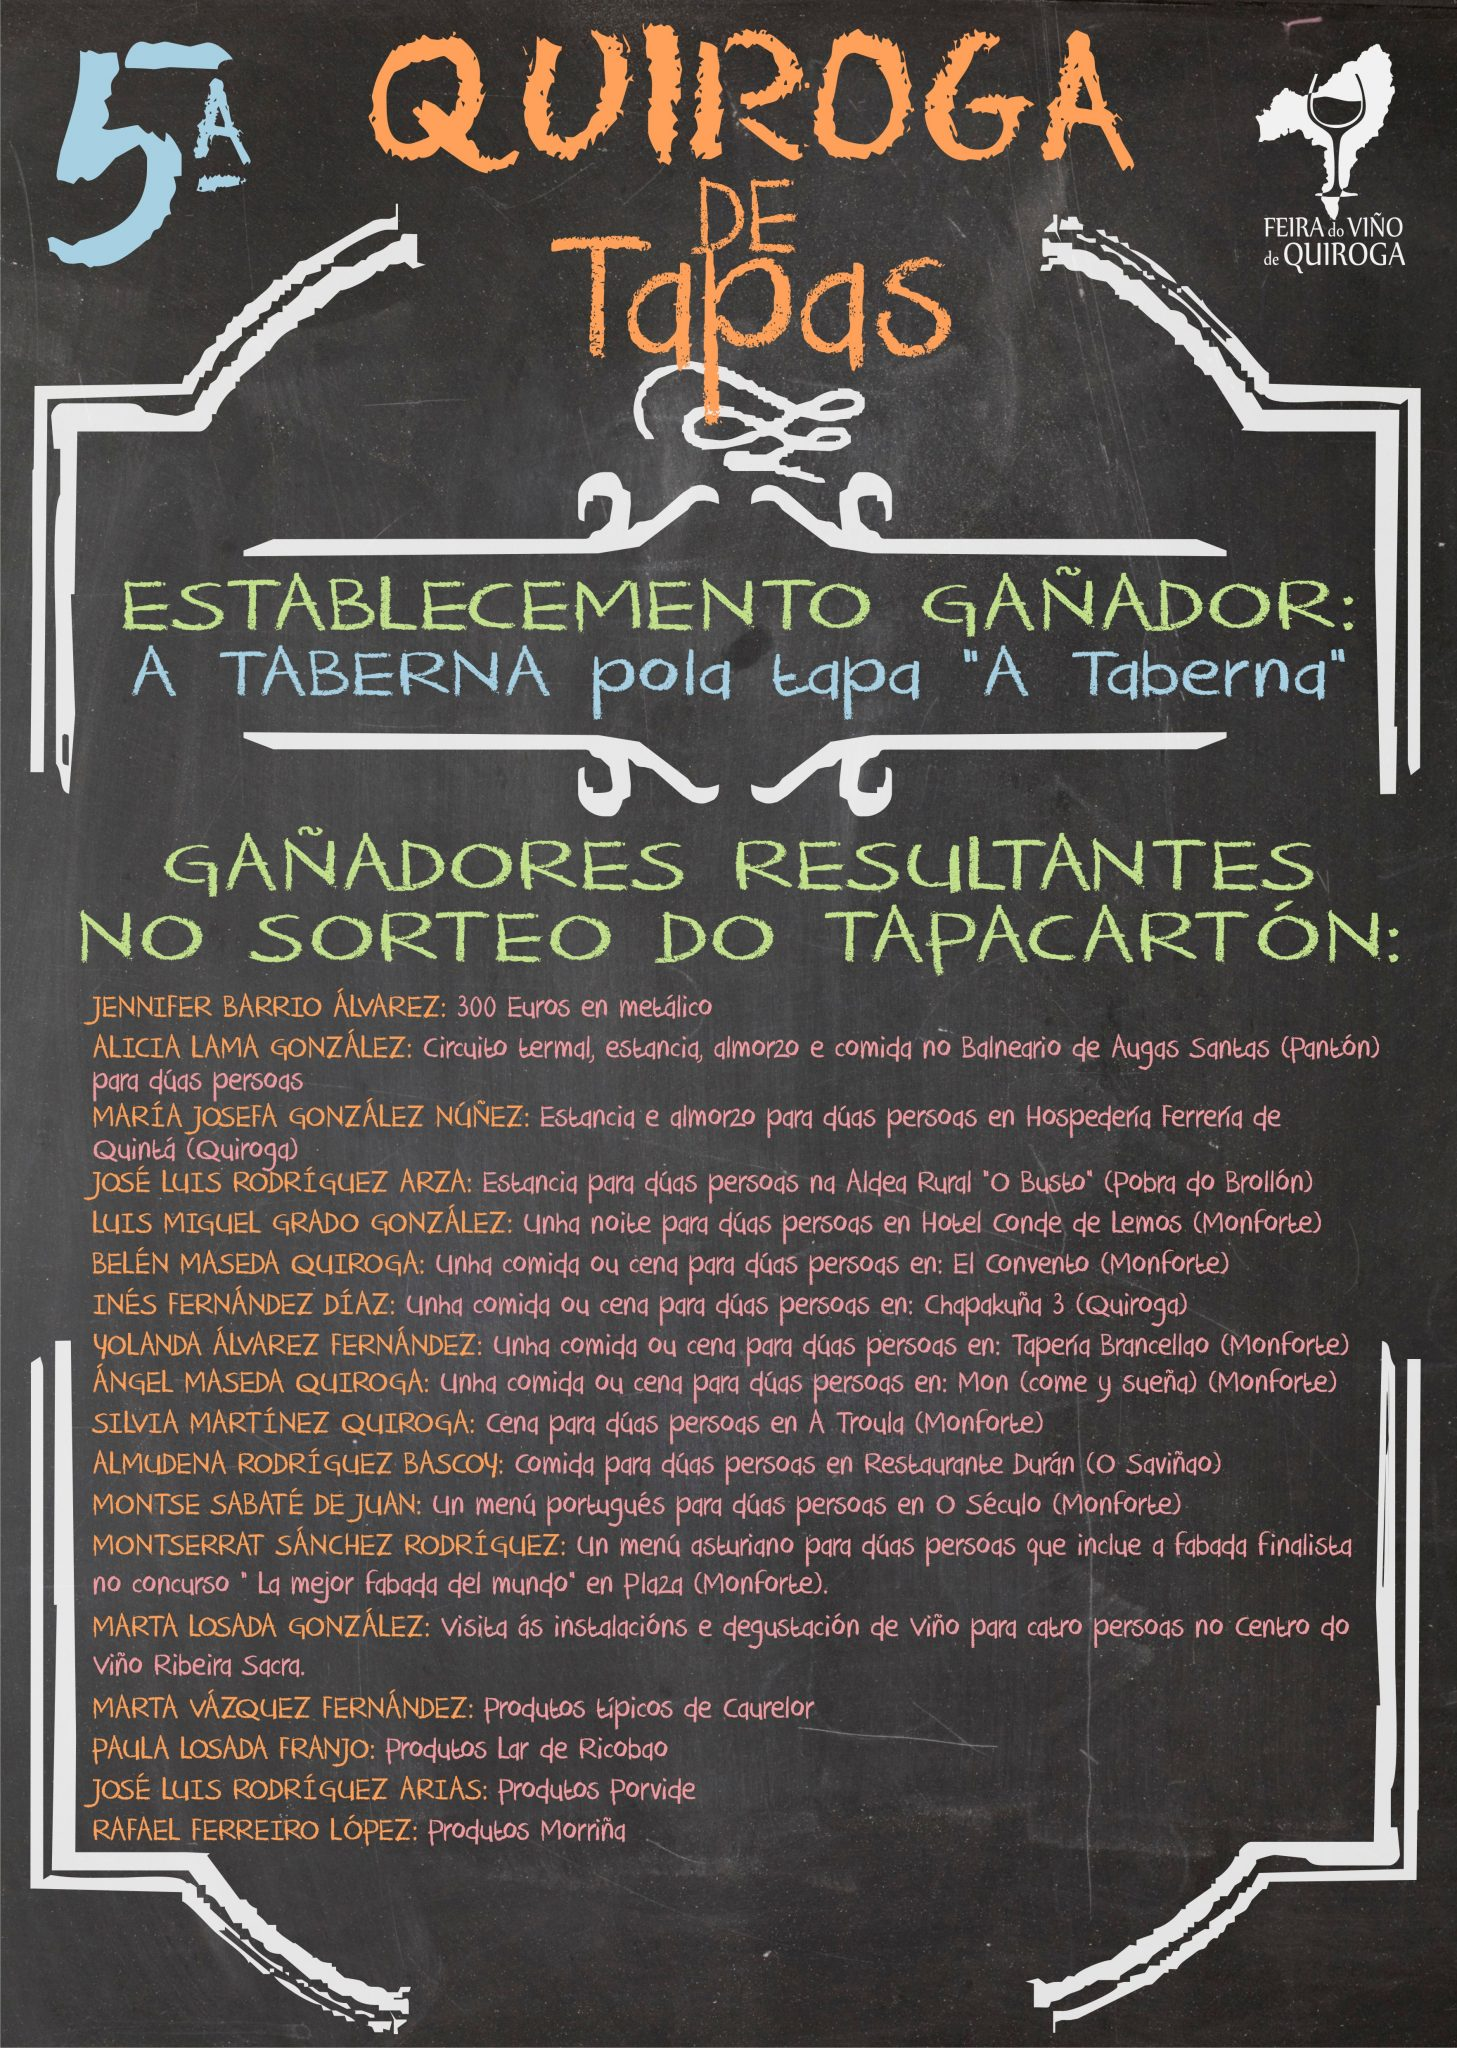 Cartel do 5º «Quiroga de Tapas»